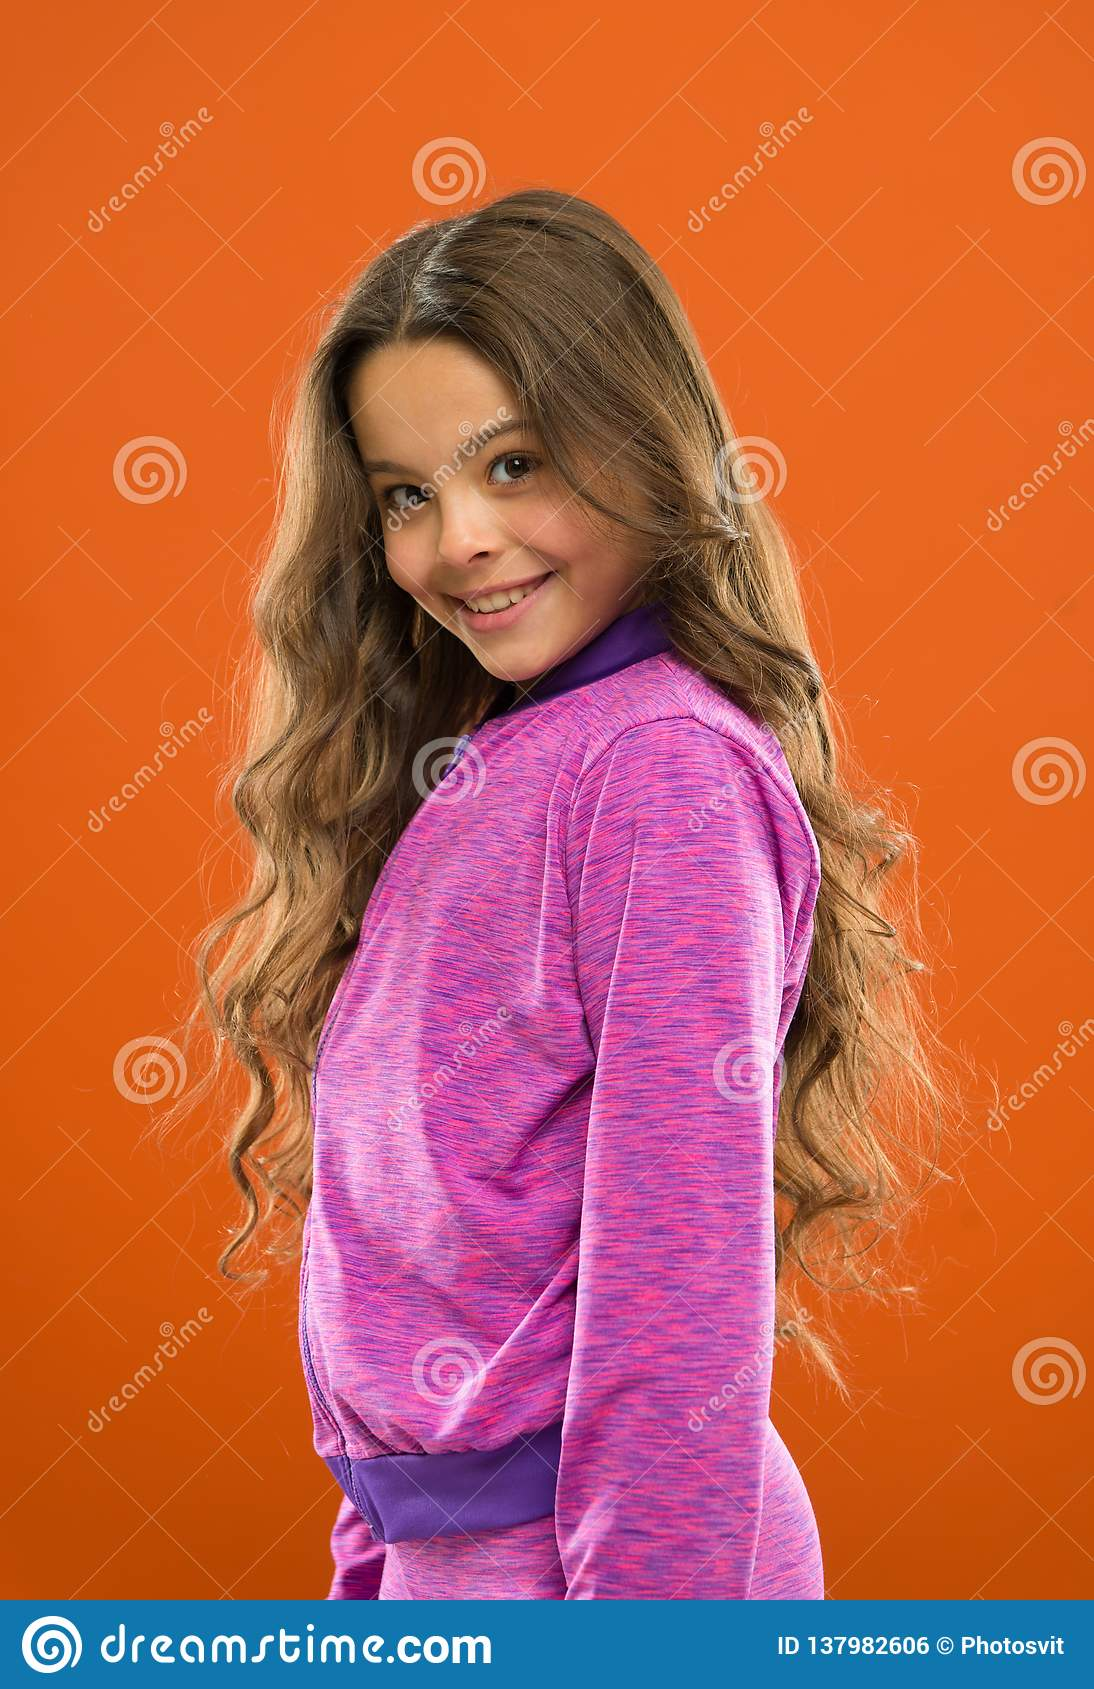 Girl active kid with long gorgeous hair. Strong and healthy hair concept. How to treat curly hair. Nice and tidy